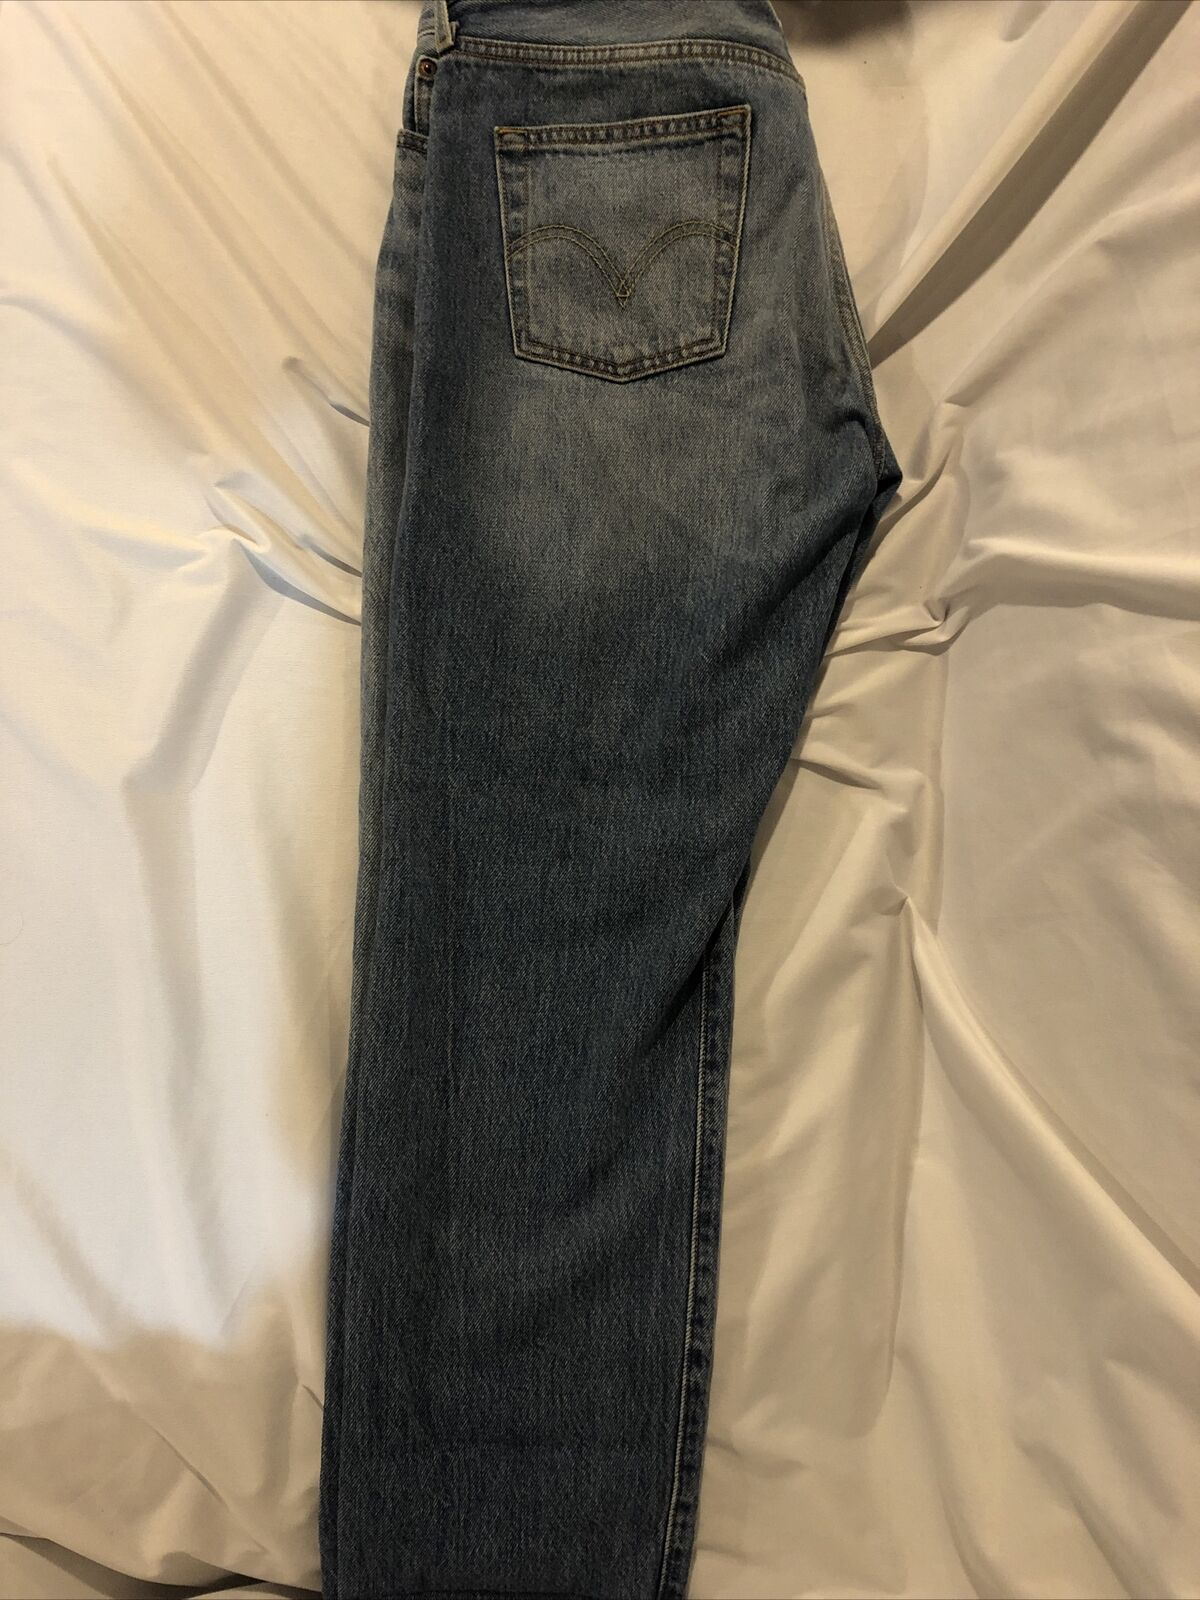 Levis Distressed 501 CT Jeans Size 28/32 - image 4